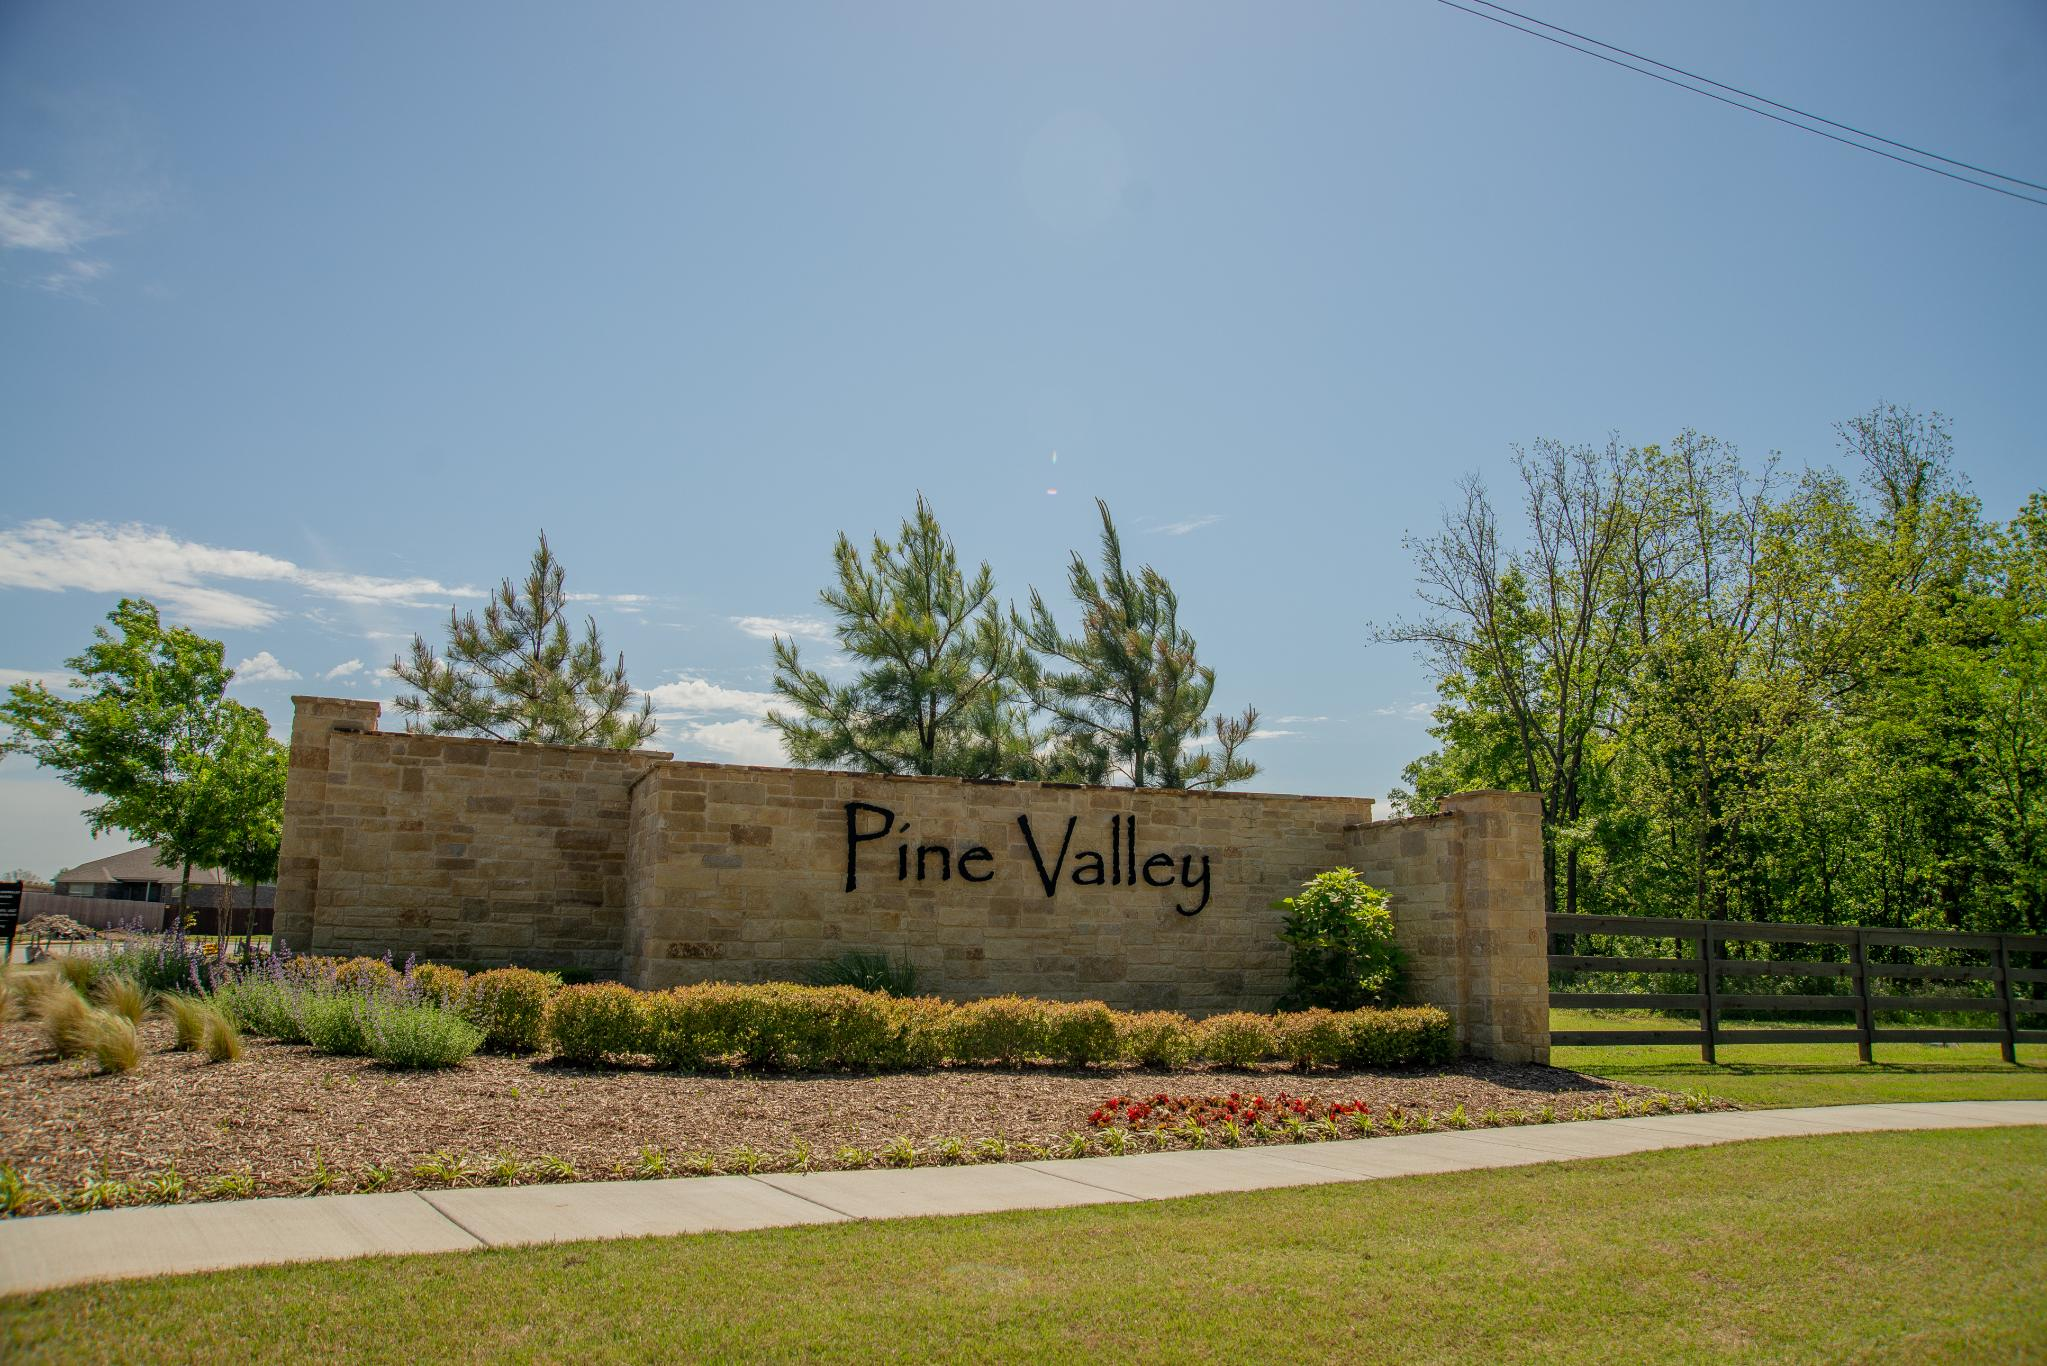 Pine Valley | Bixby New Homes | Built By Simmons Homes